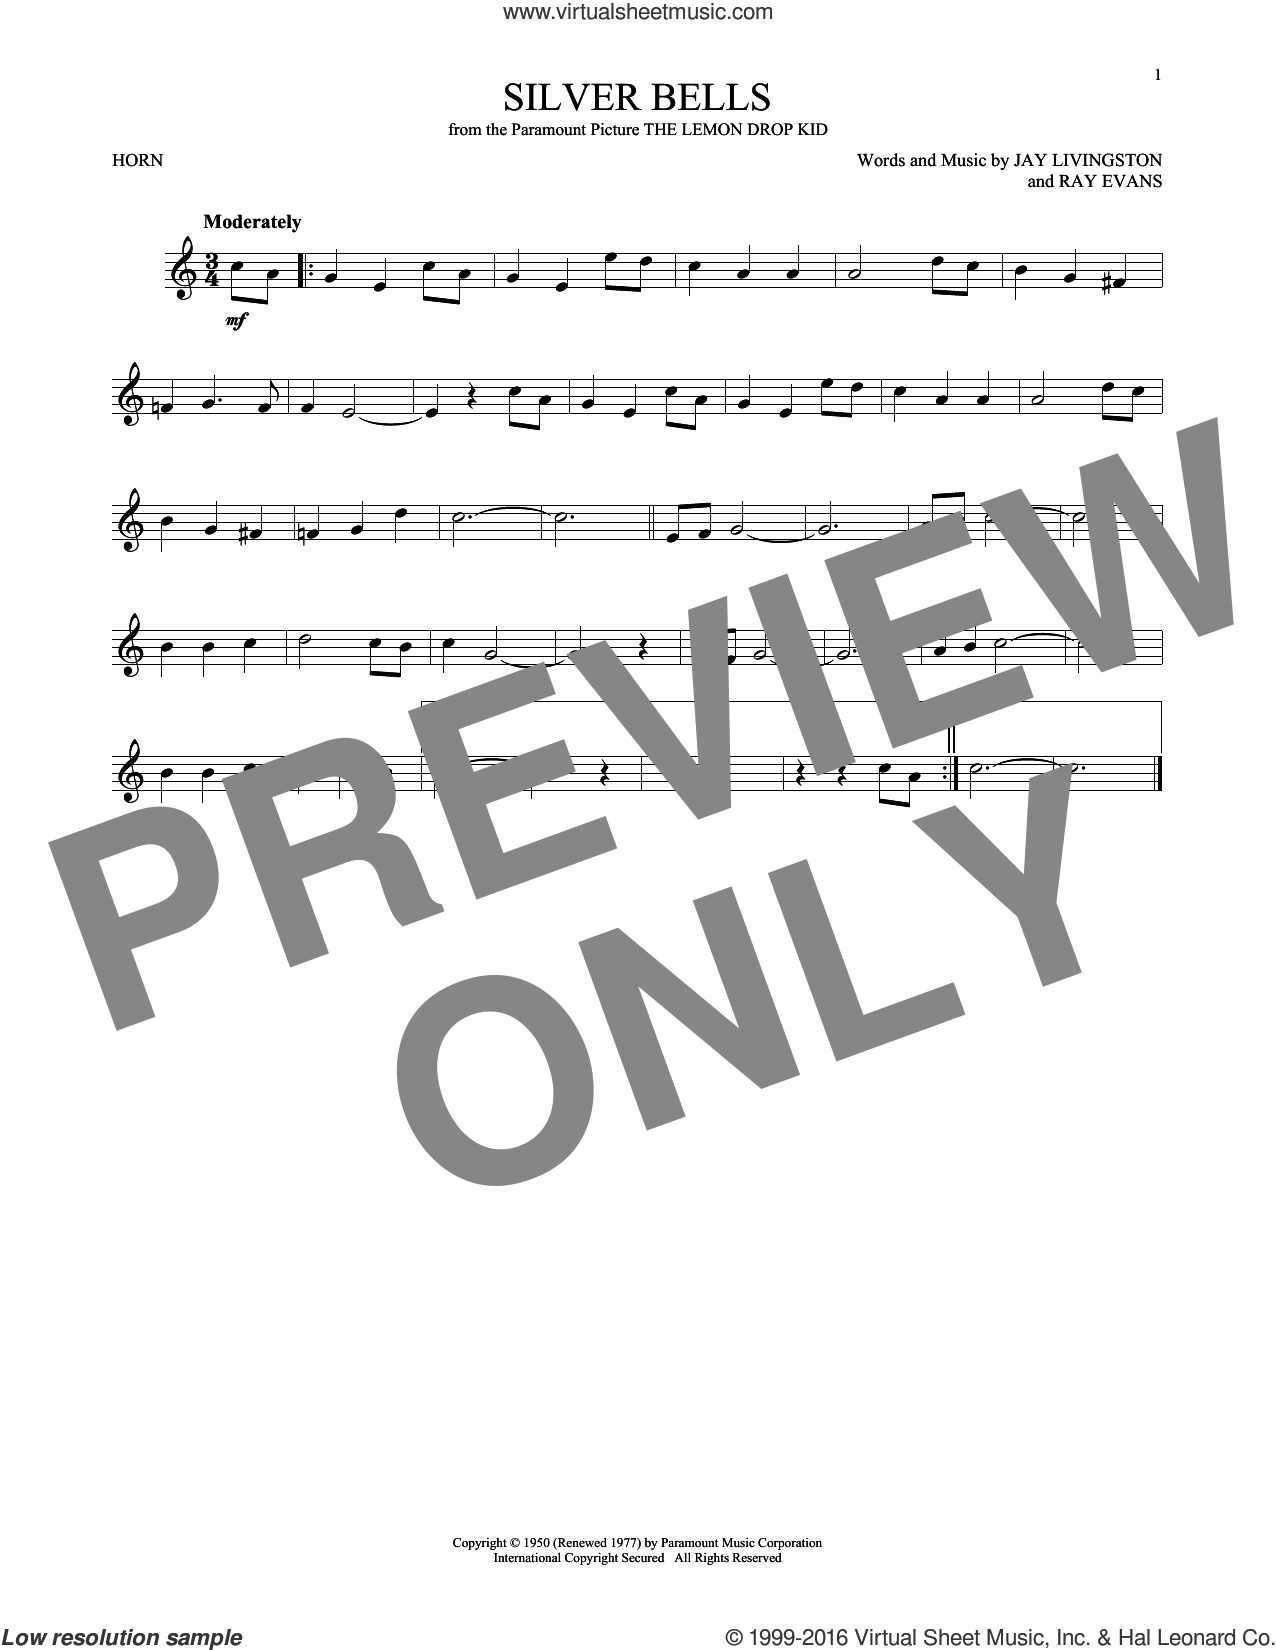 Silver Bells sheet music for horn solo by Jay Livingston, Jay Livingston & Ray Evans and Ray Evans, intermediate skill level